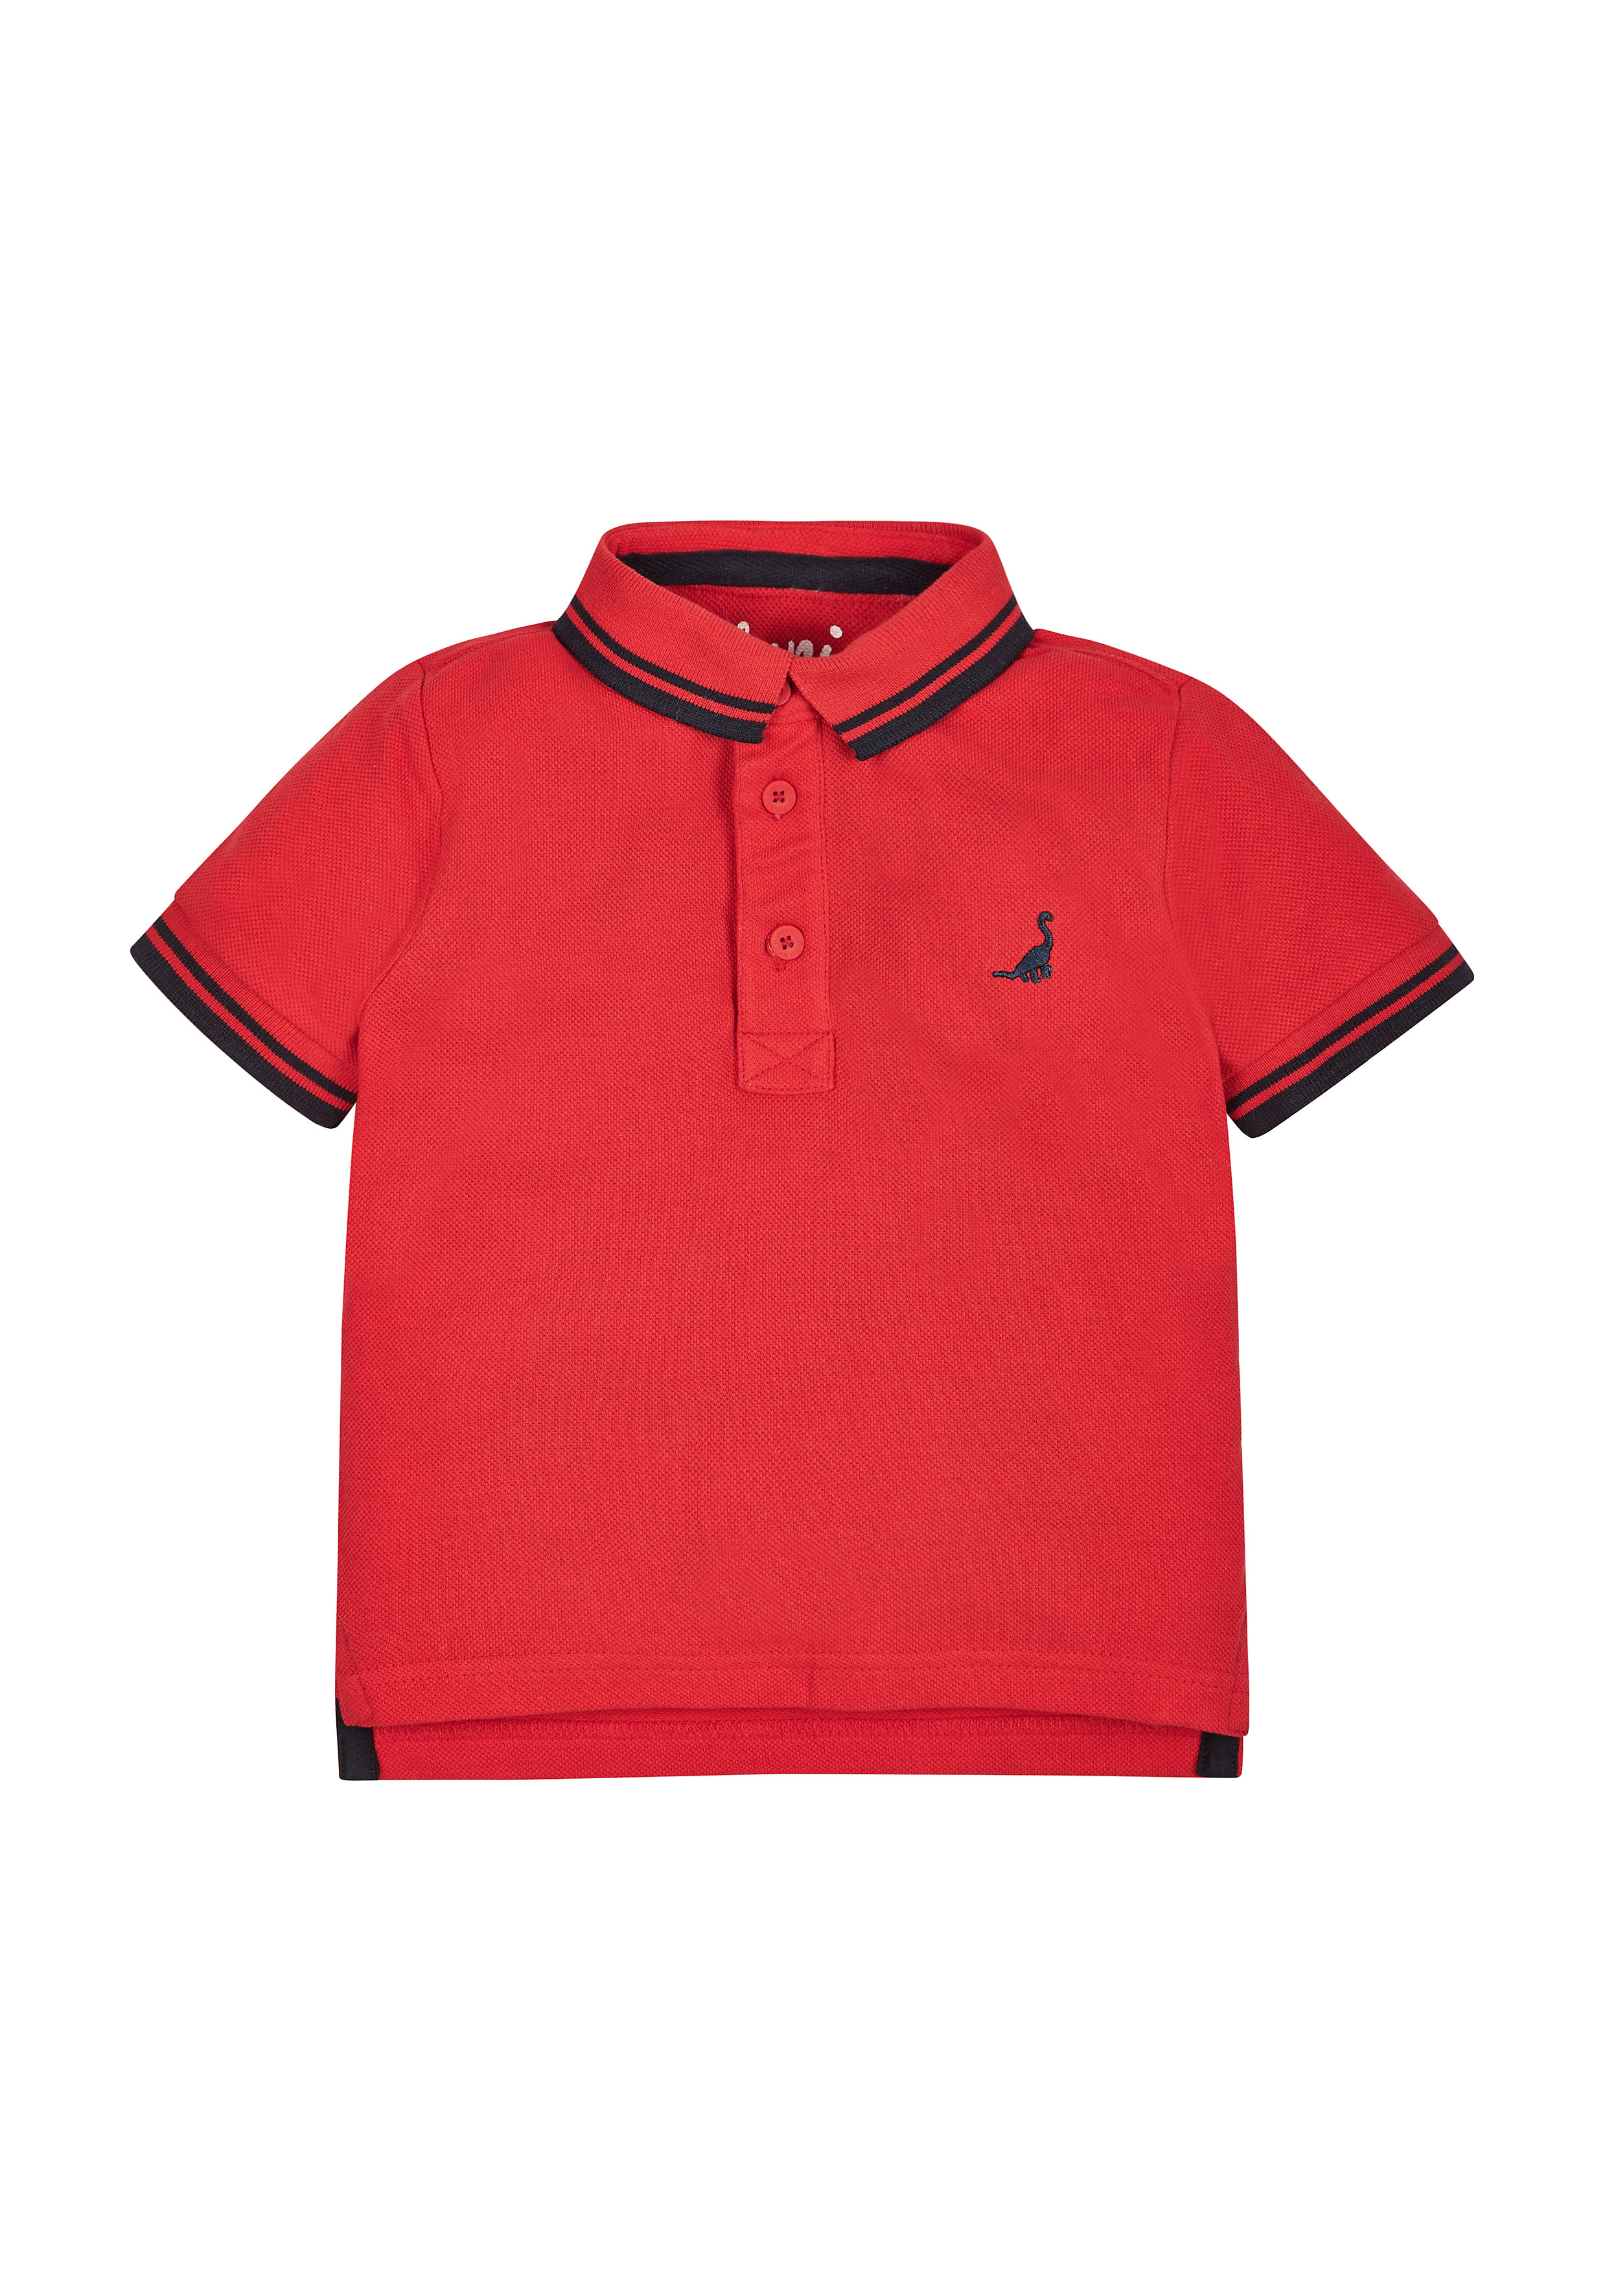 Mothercare | Boys Polo T-Shirt - Red